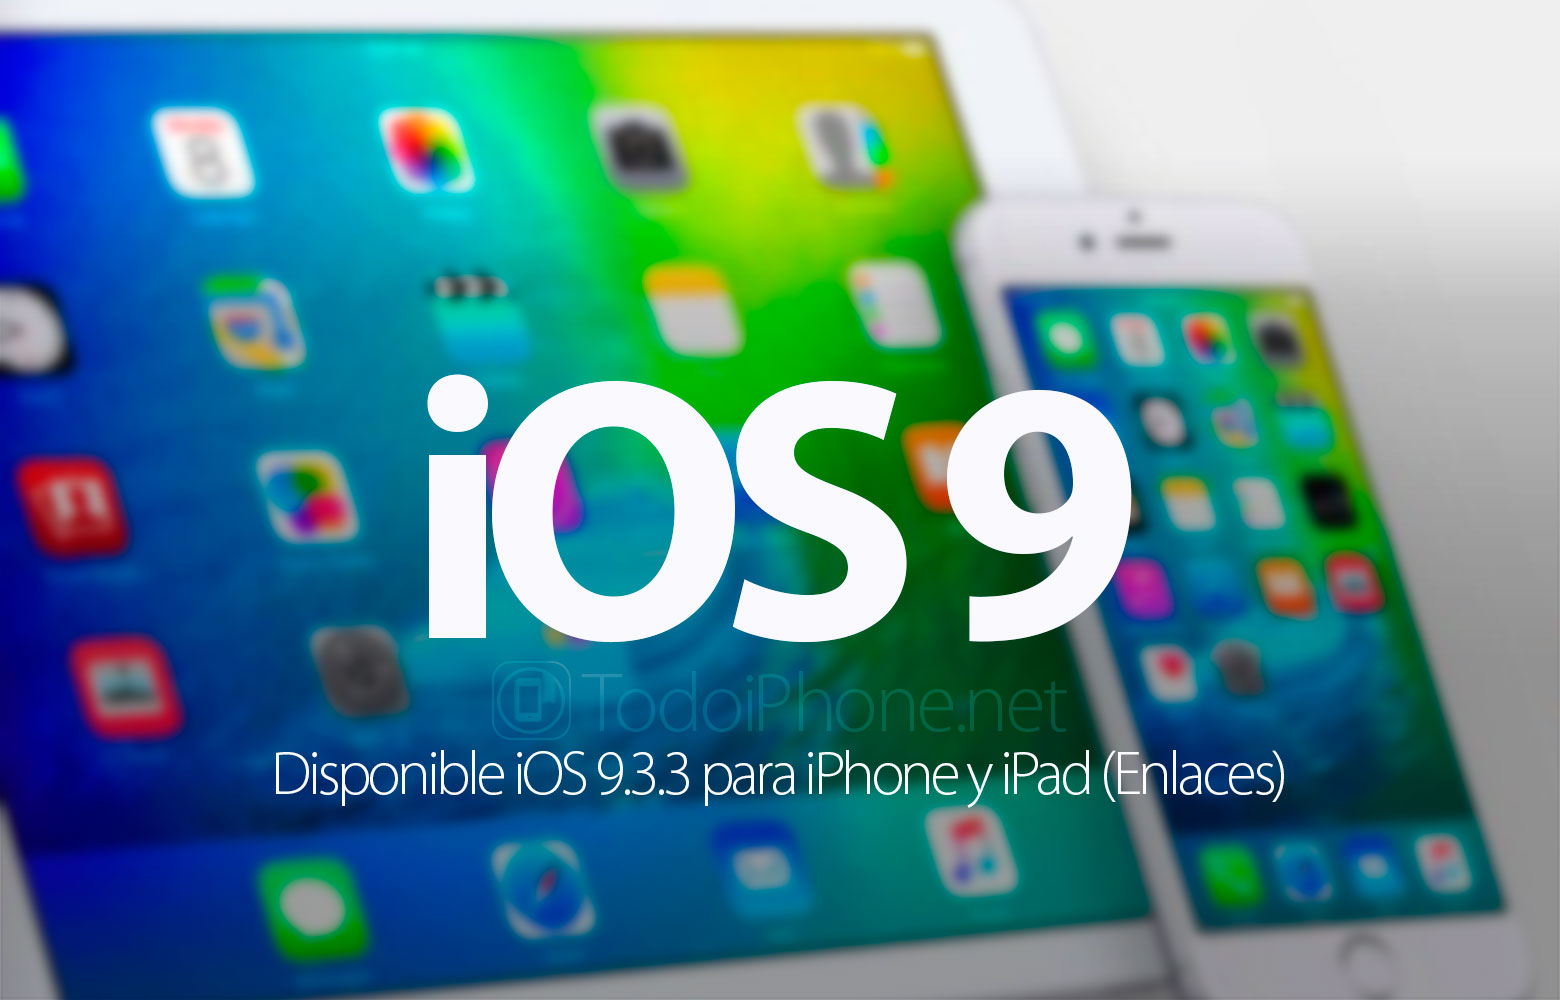 ios-9-3-3-disponible-iphone-ipad-enlaces